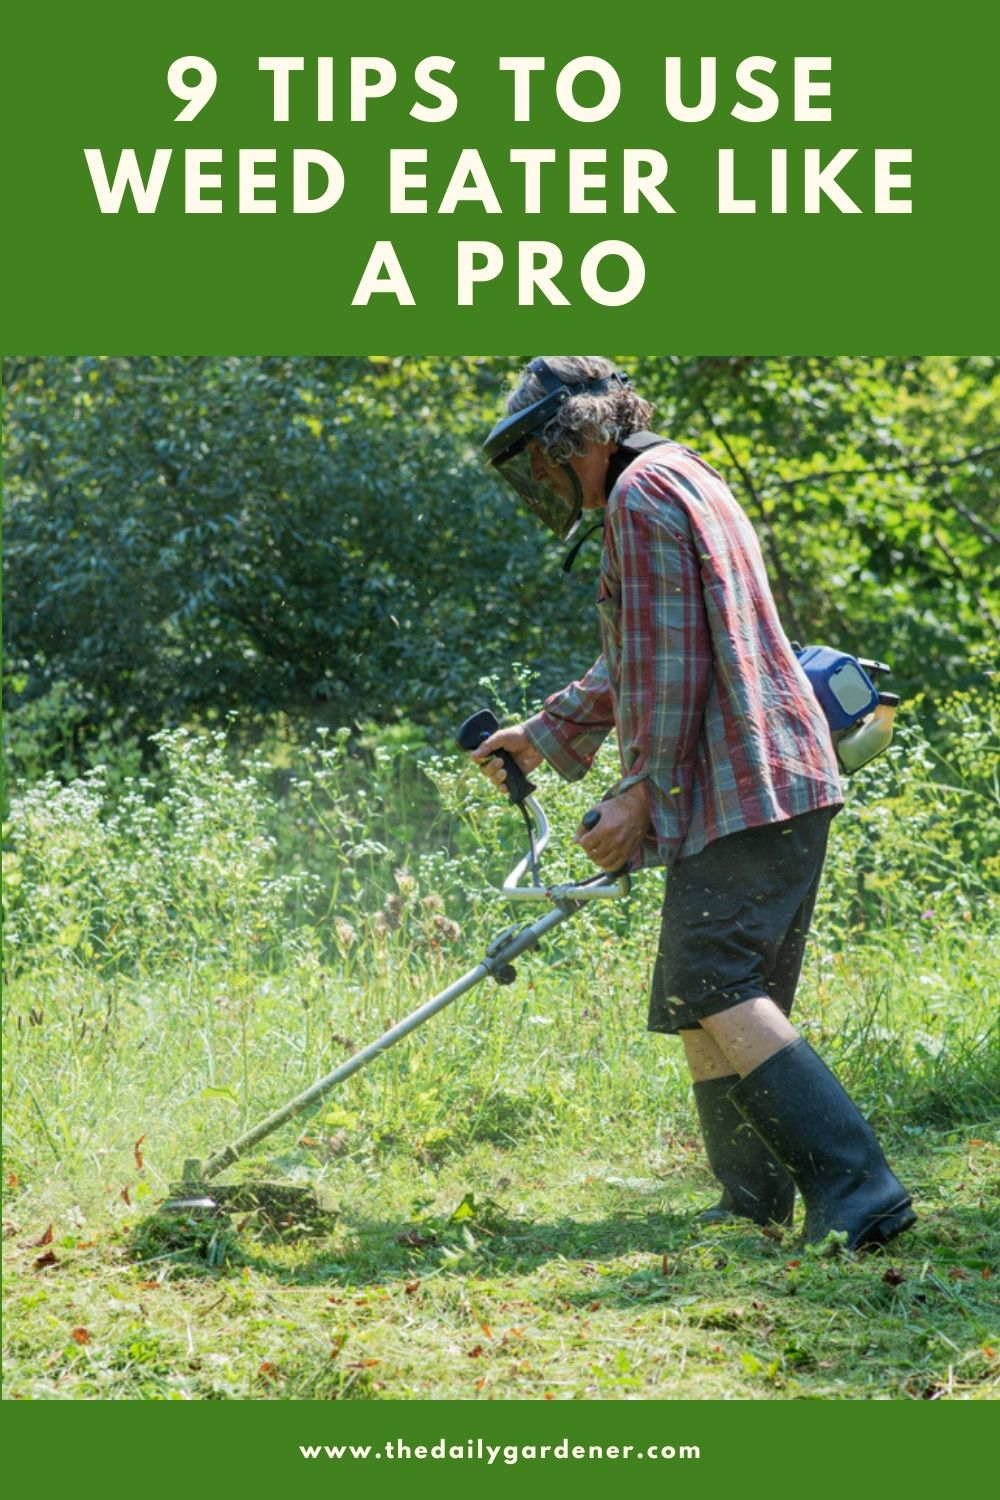 9 Tips to Use Weed Eater Like a Pro 1